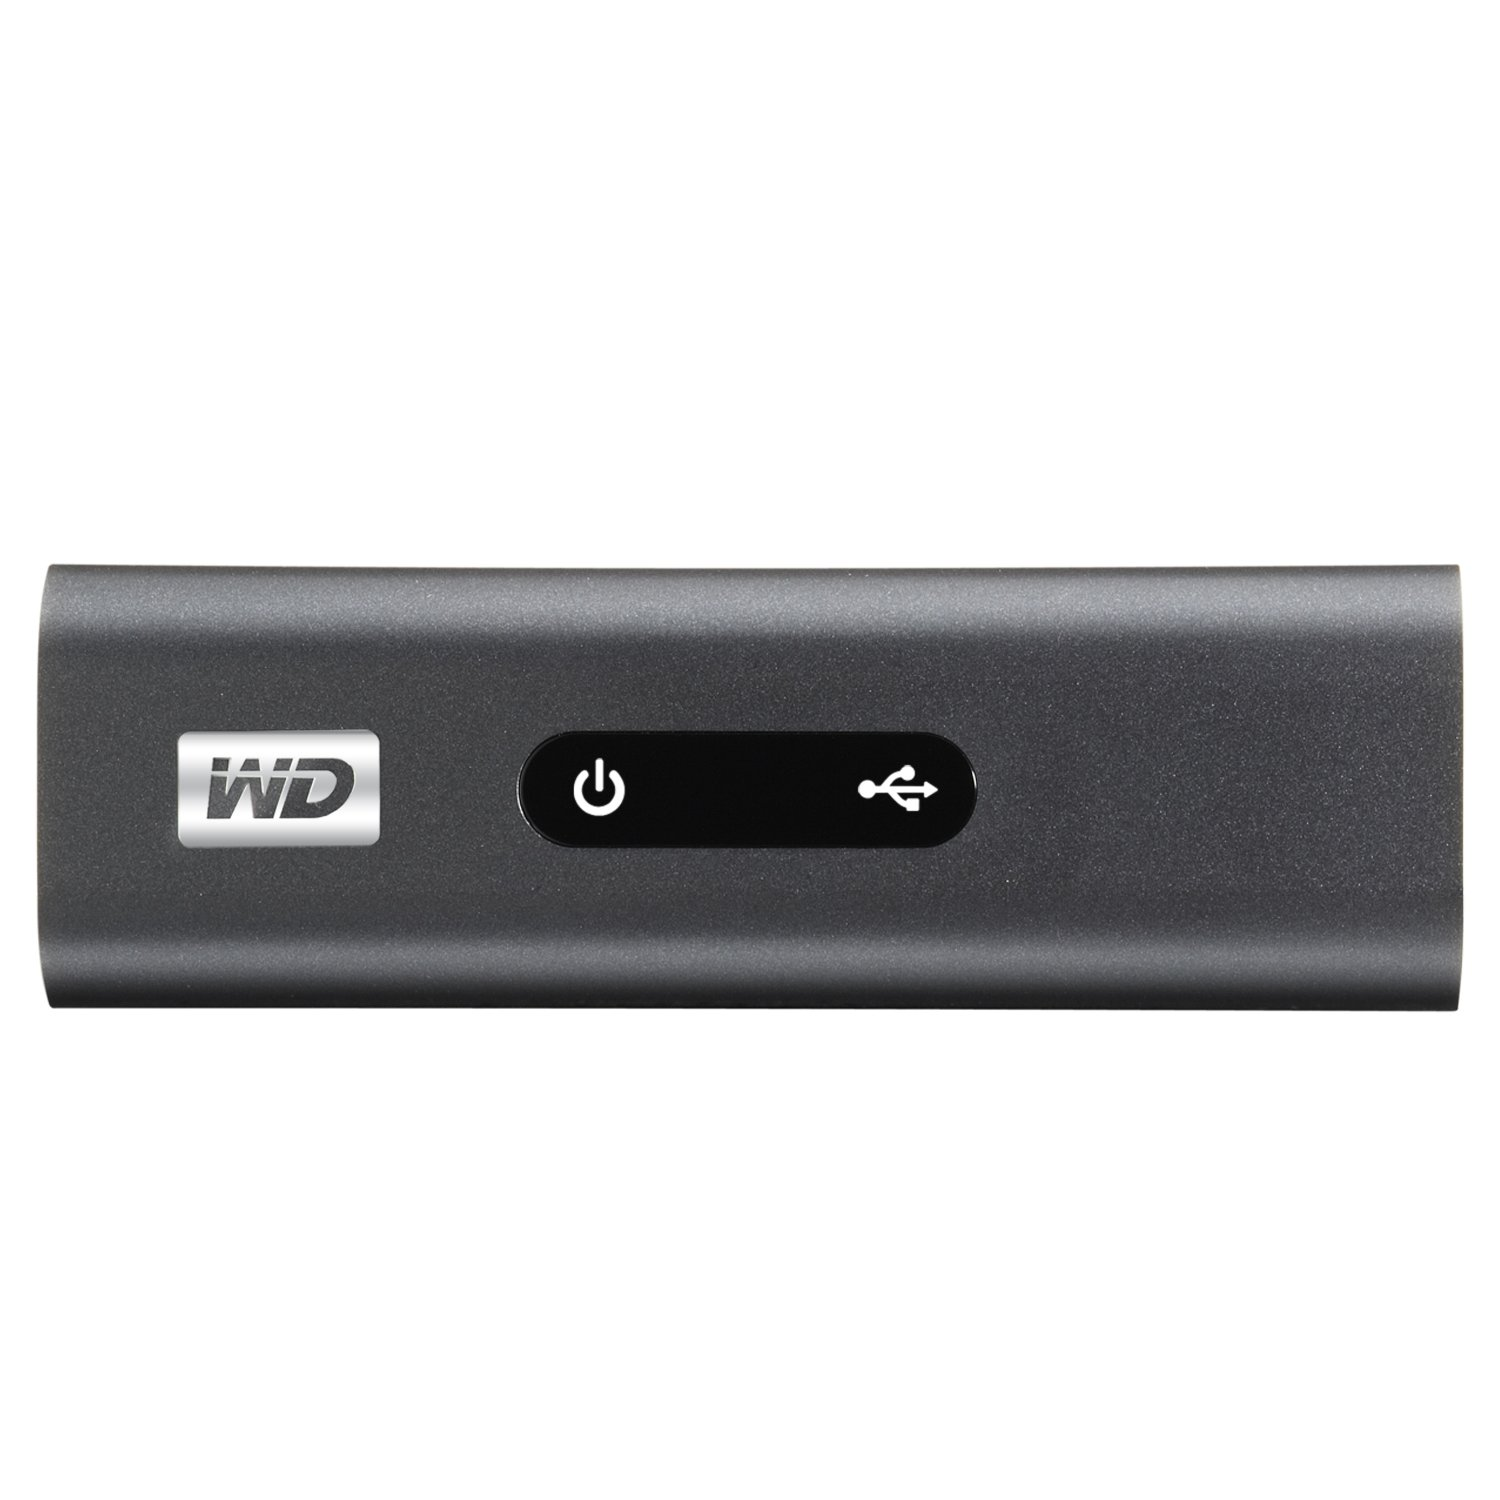 Western Digital WD TV Live HD Media Player Discontinued by ...